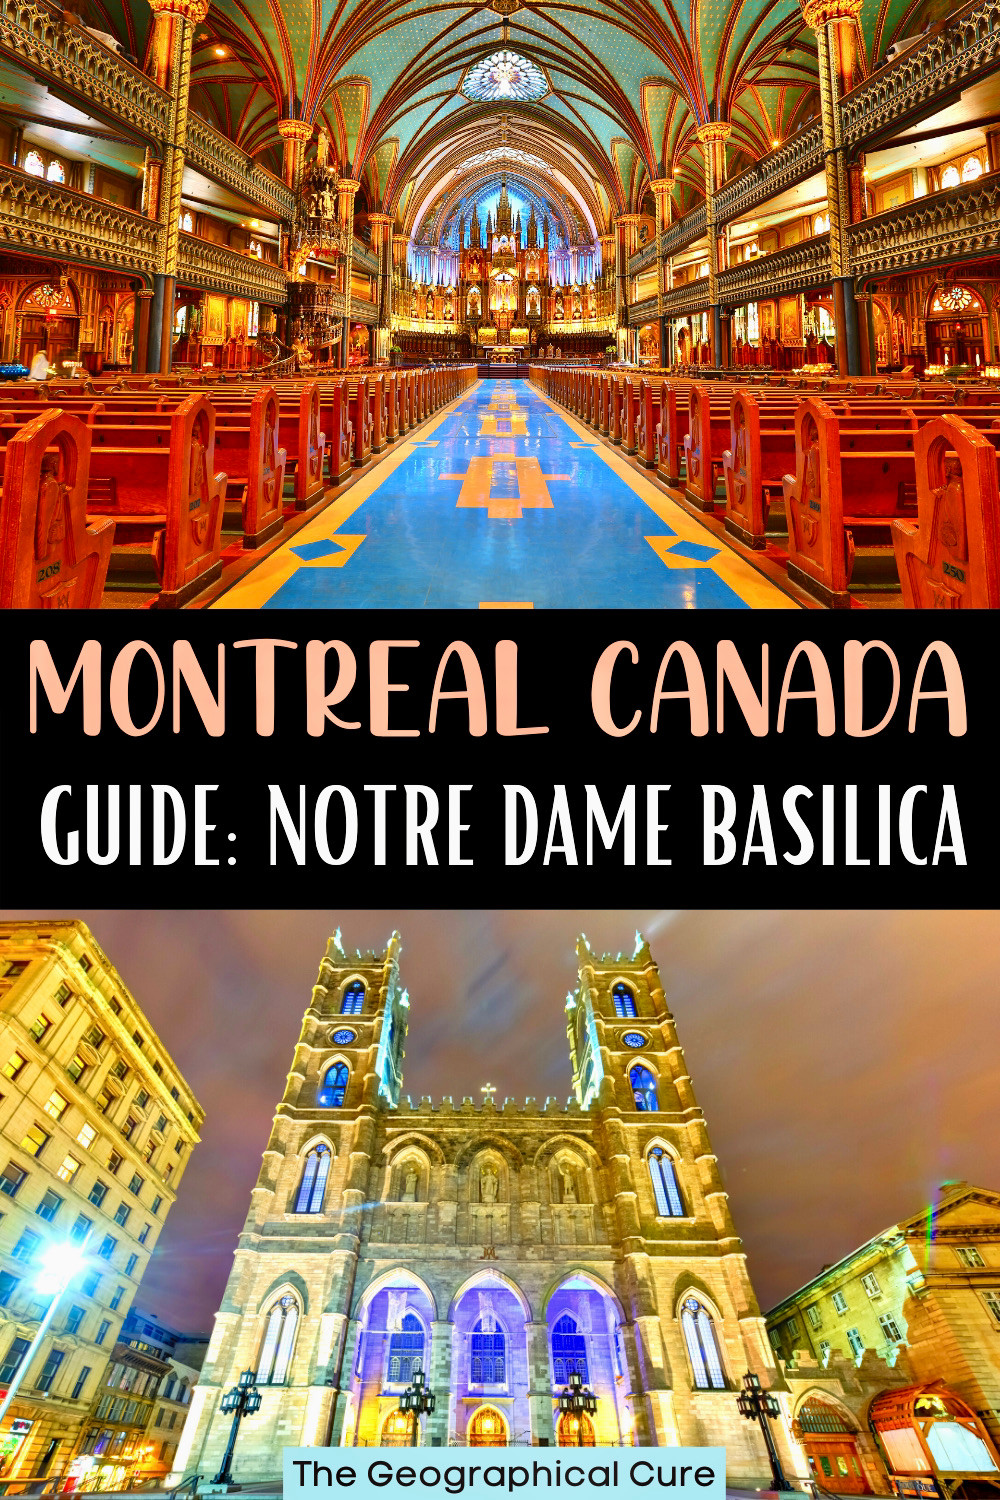 ultimate guide to the Notre Dame Basilica in Montreal Canada